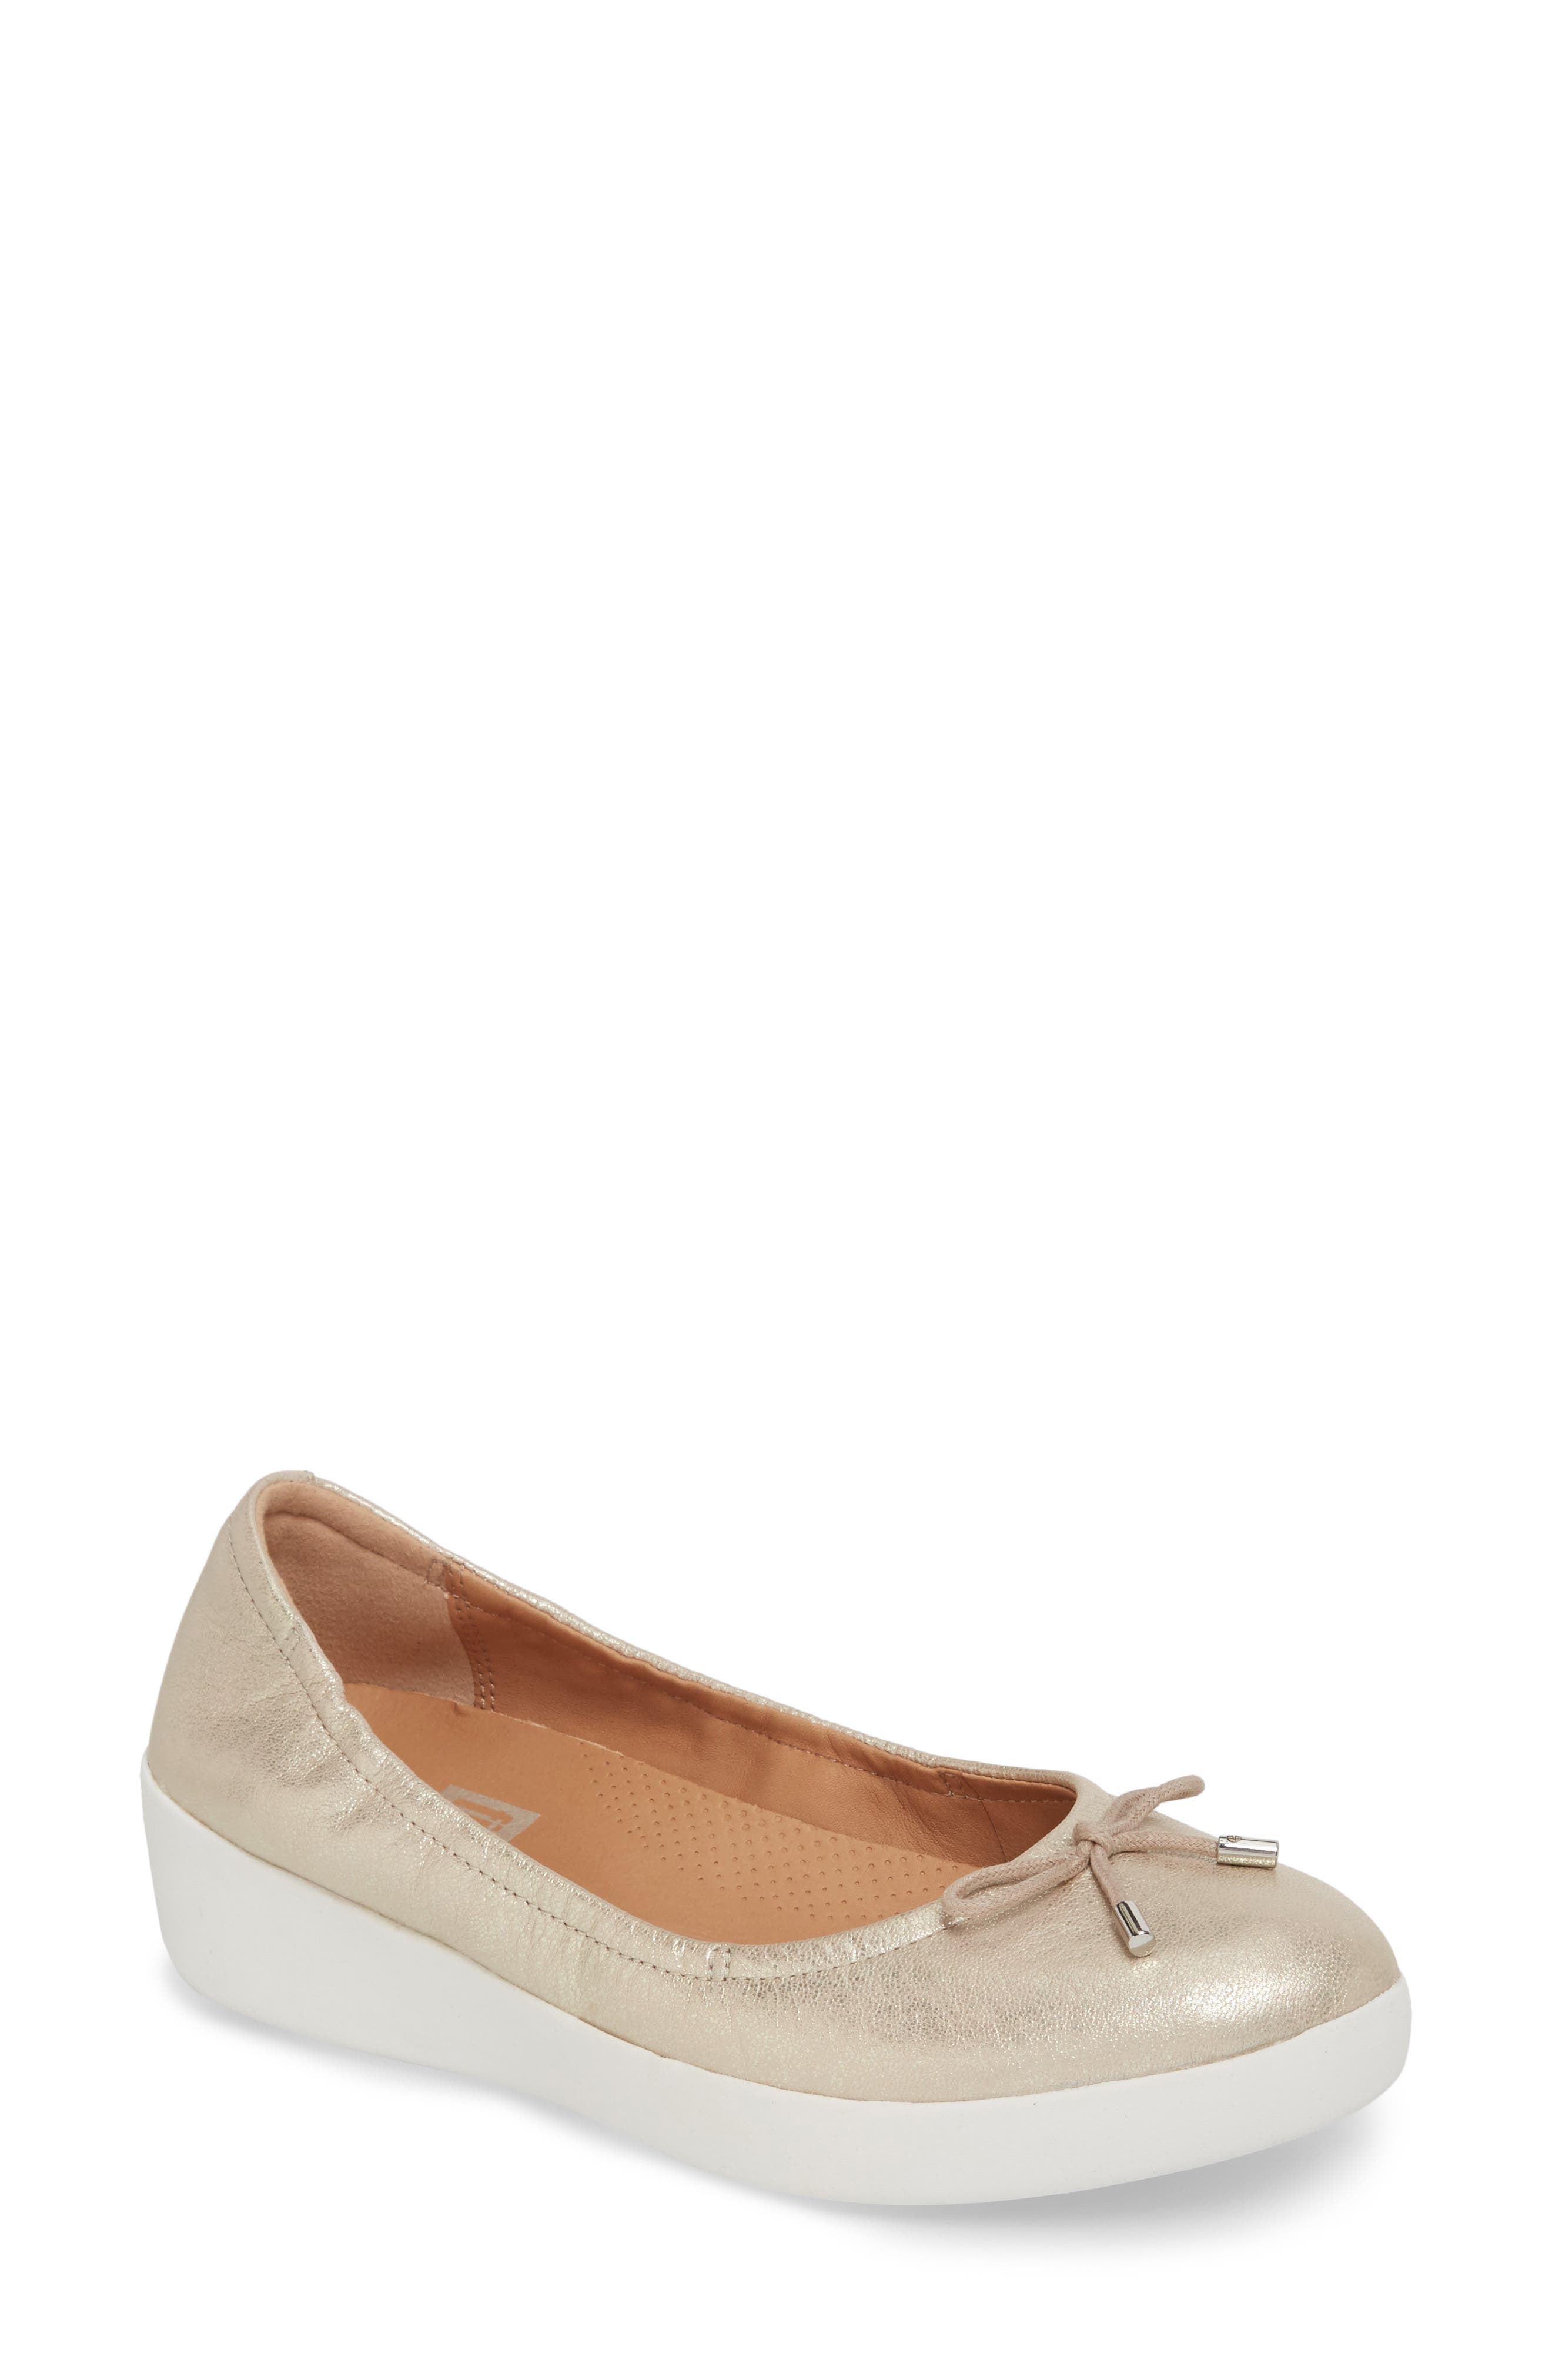 Superbendy Ballerina Flat,                             Main thumbnail 1, color,                             METALLIC SILVER LEATHER